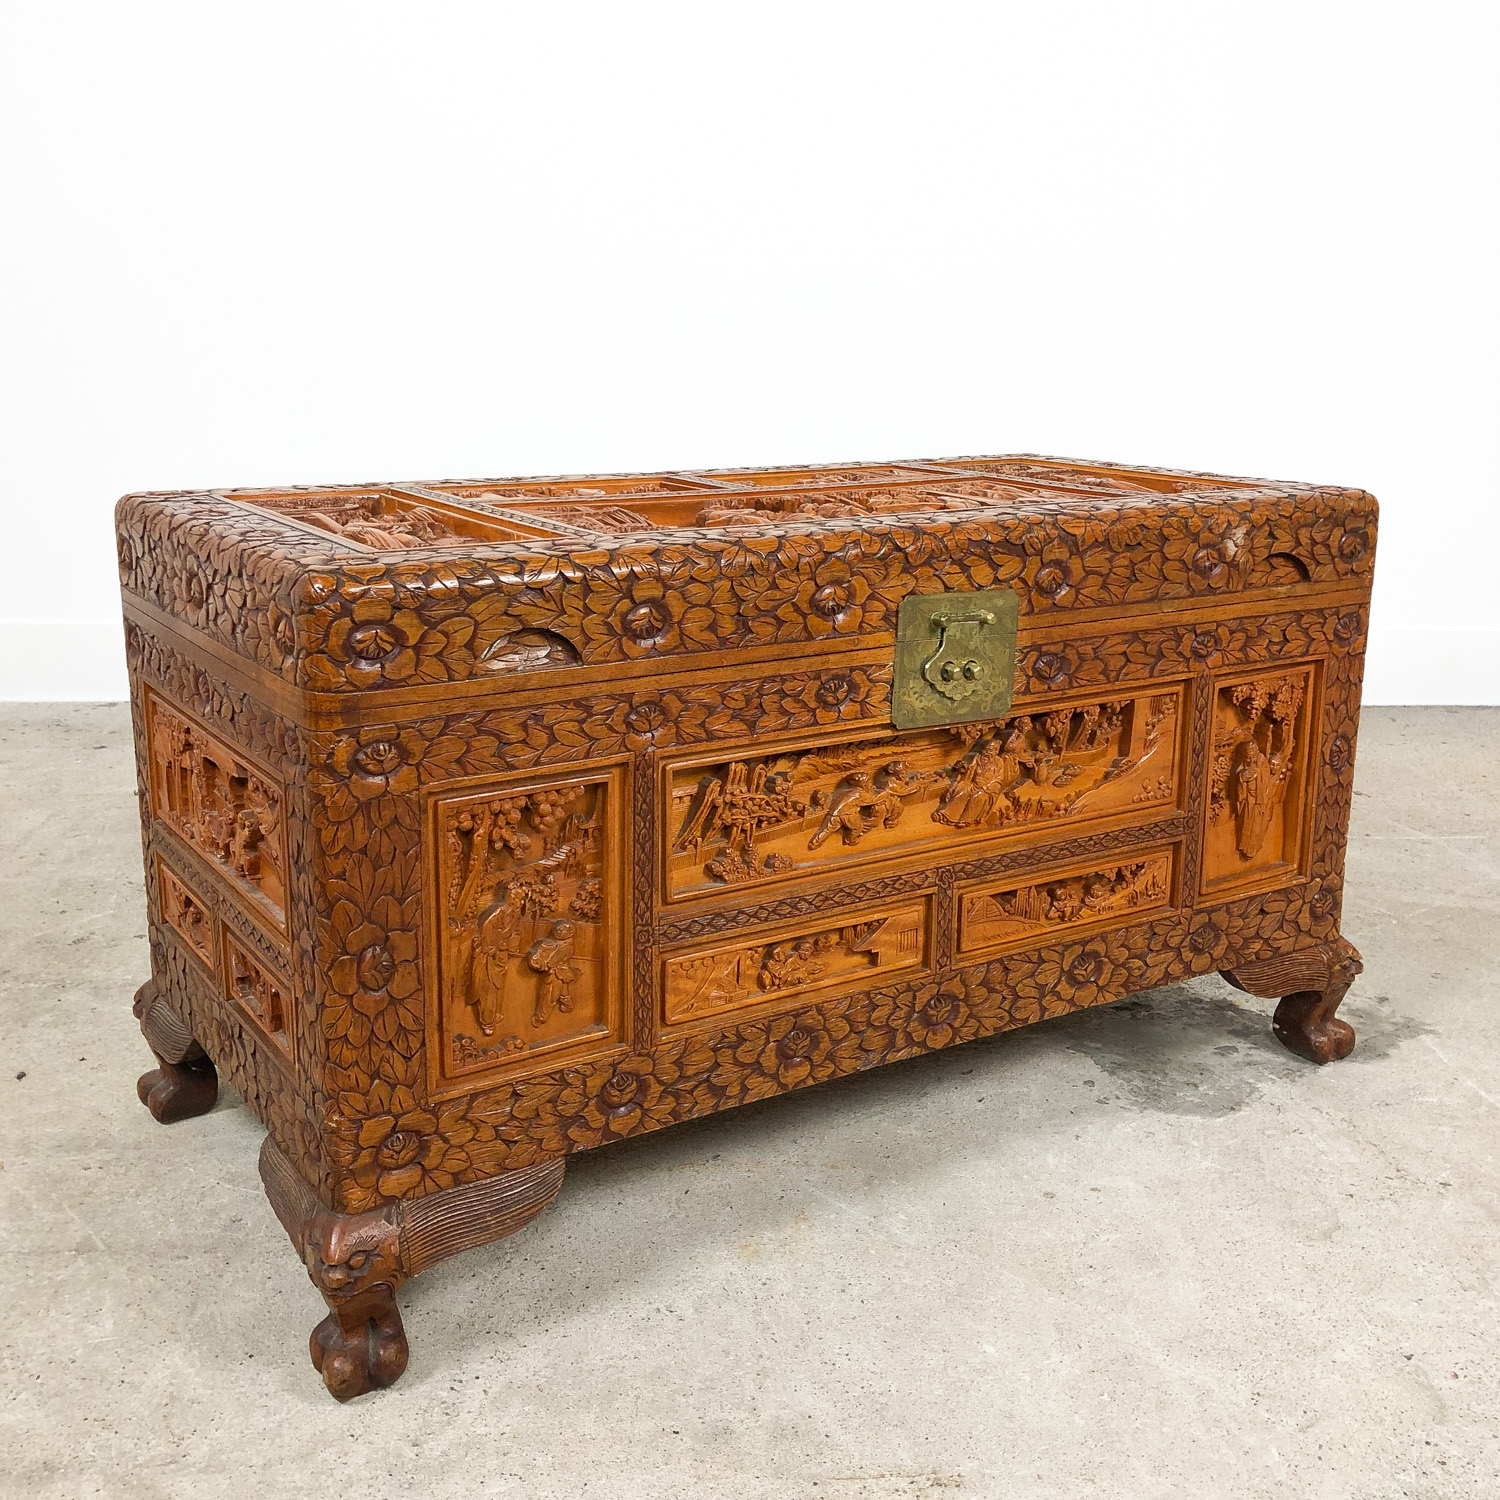 Vintage Chinese carved camphor wood chest on claw feet